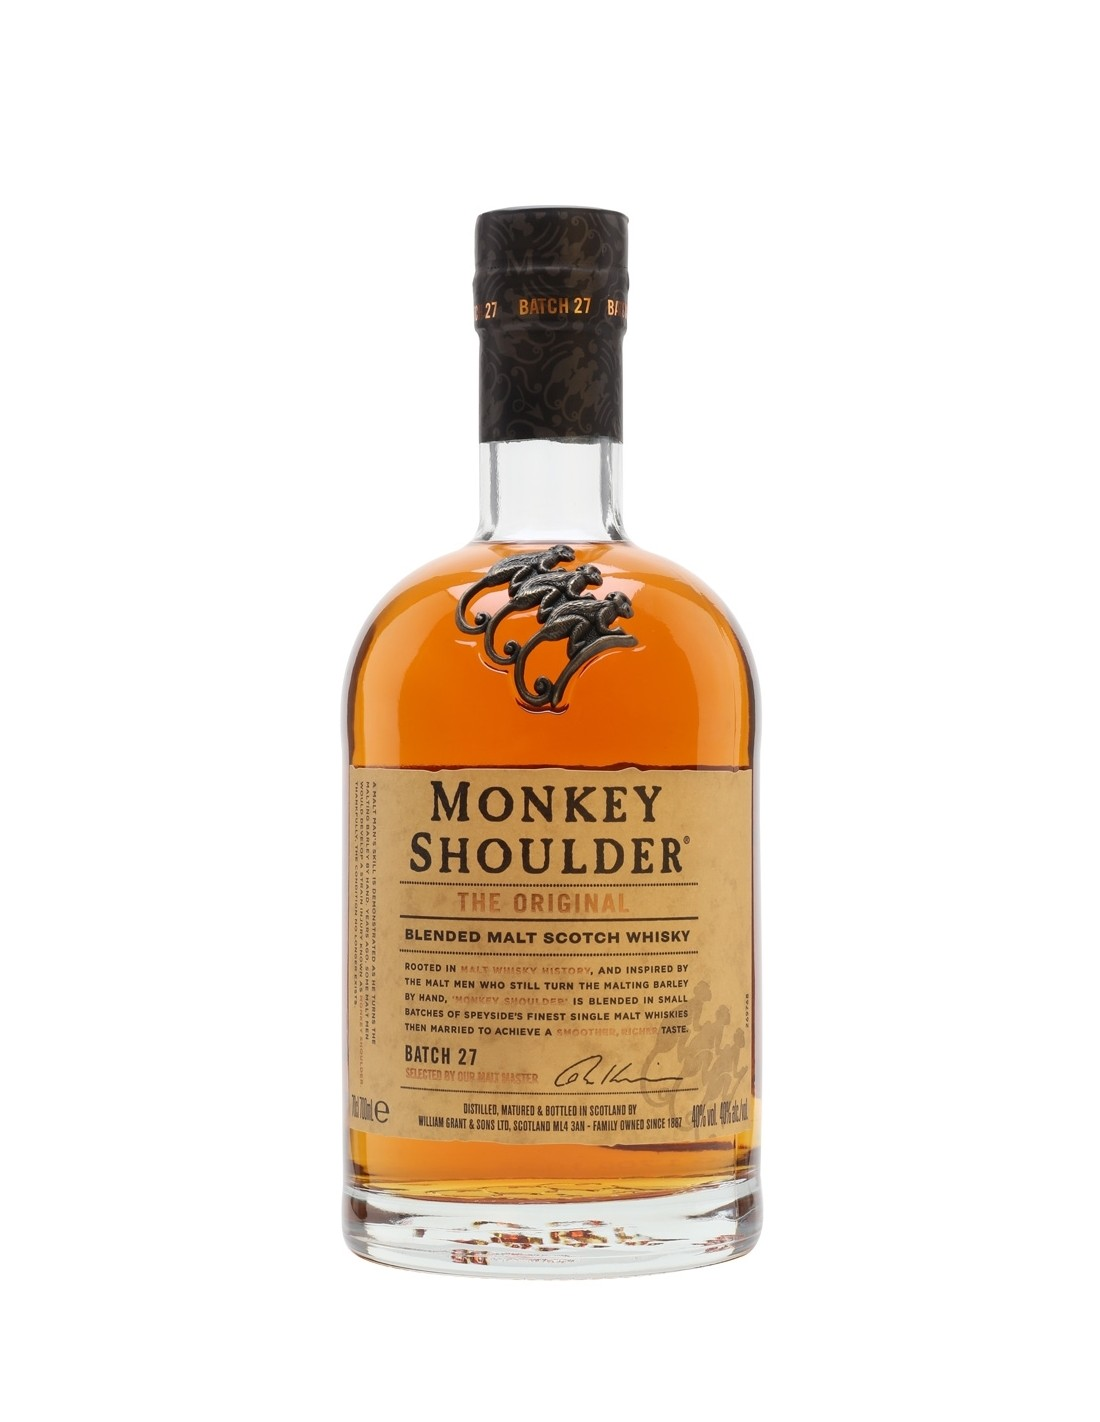 Whisky Monkey Shoulder, 40% alc., 0.7L, Scotia